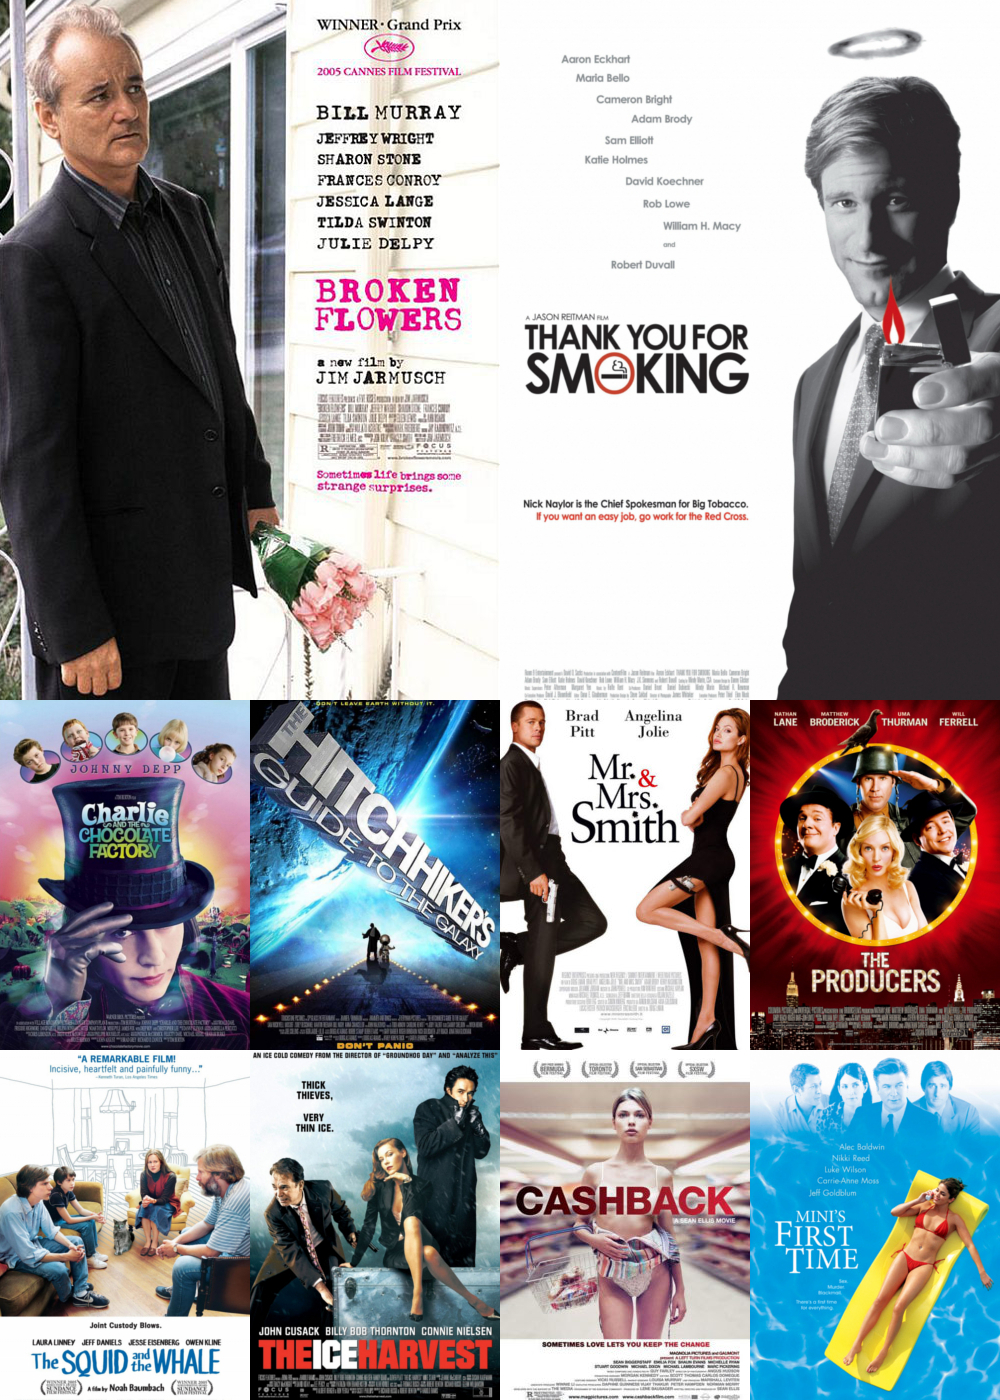 Top 10 Comedy Movies 2005